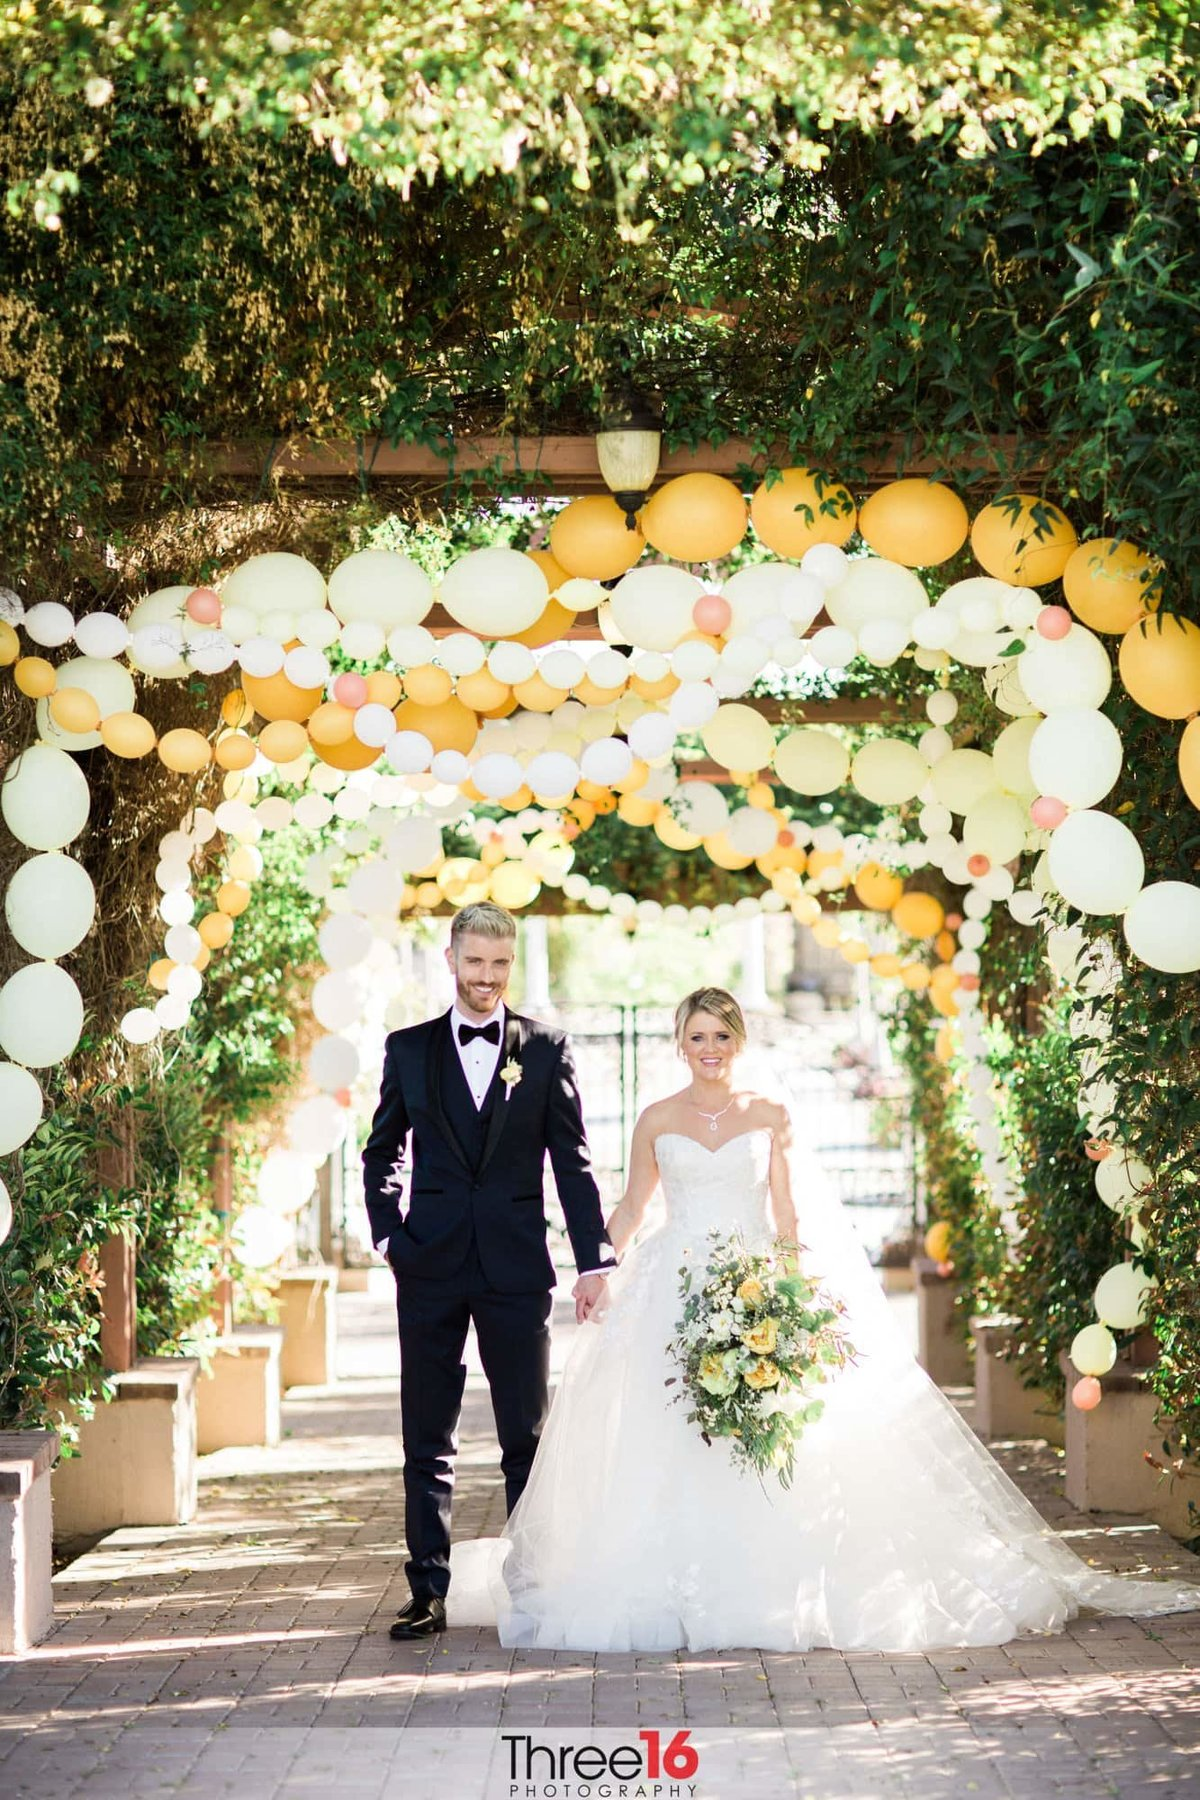 Newly married couple walk under a balloon arch at Mount Palomar Winery Wedding  Venue